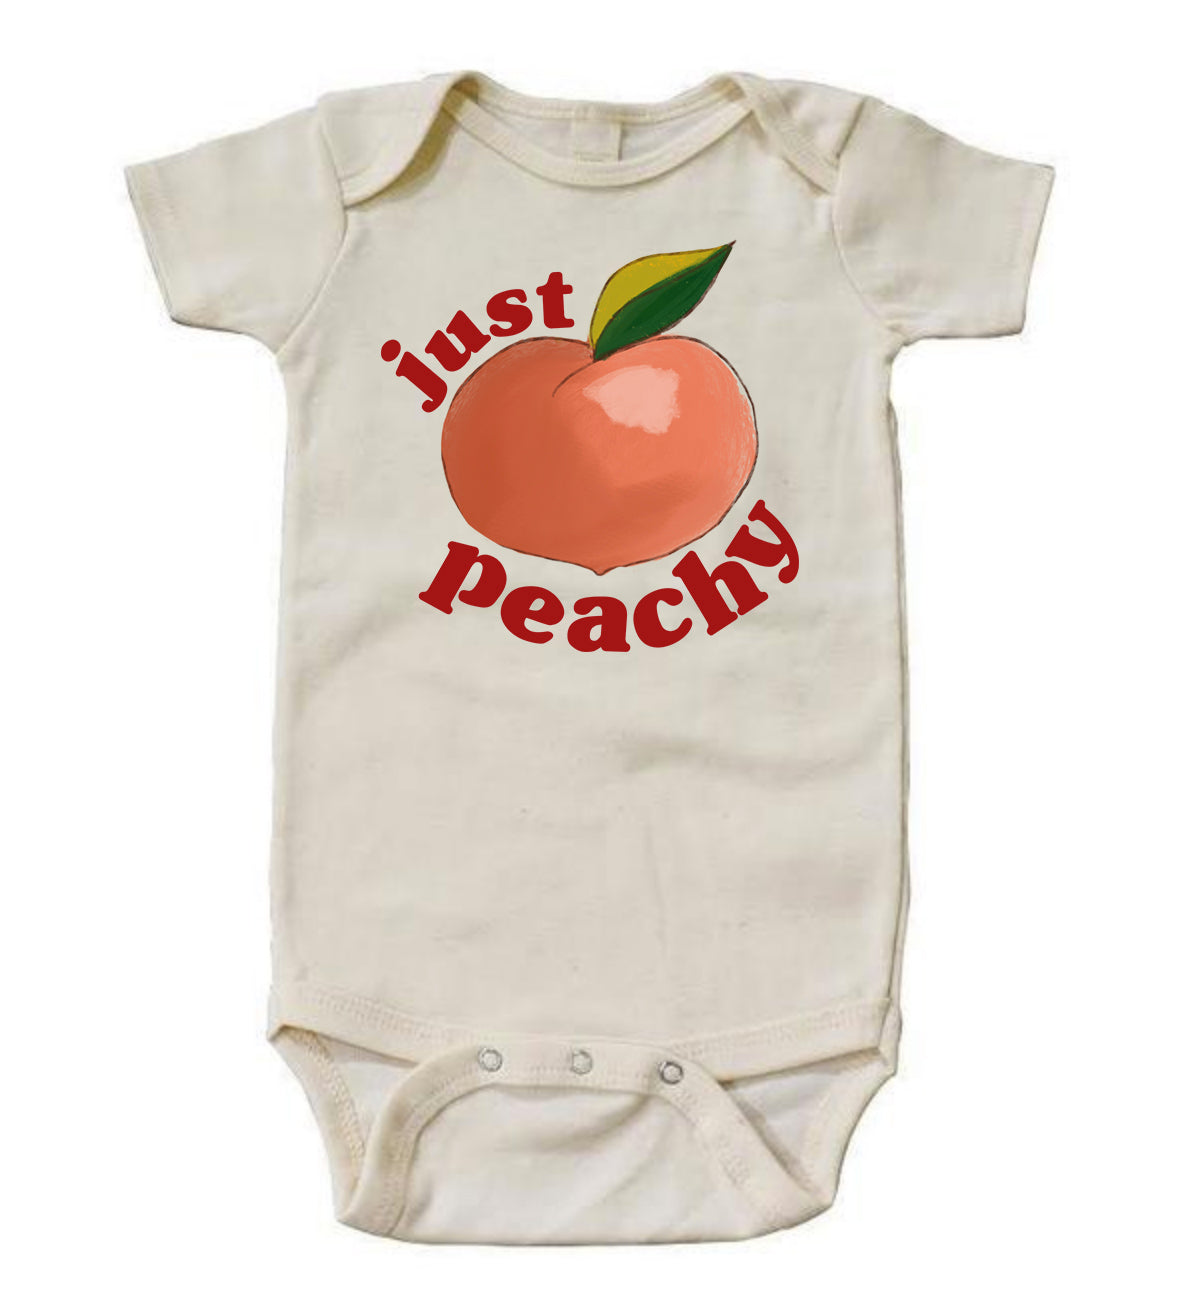 Just Peachy Baby